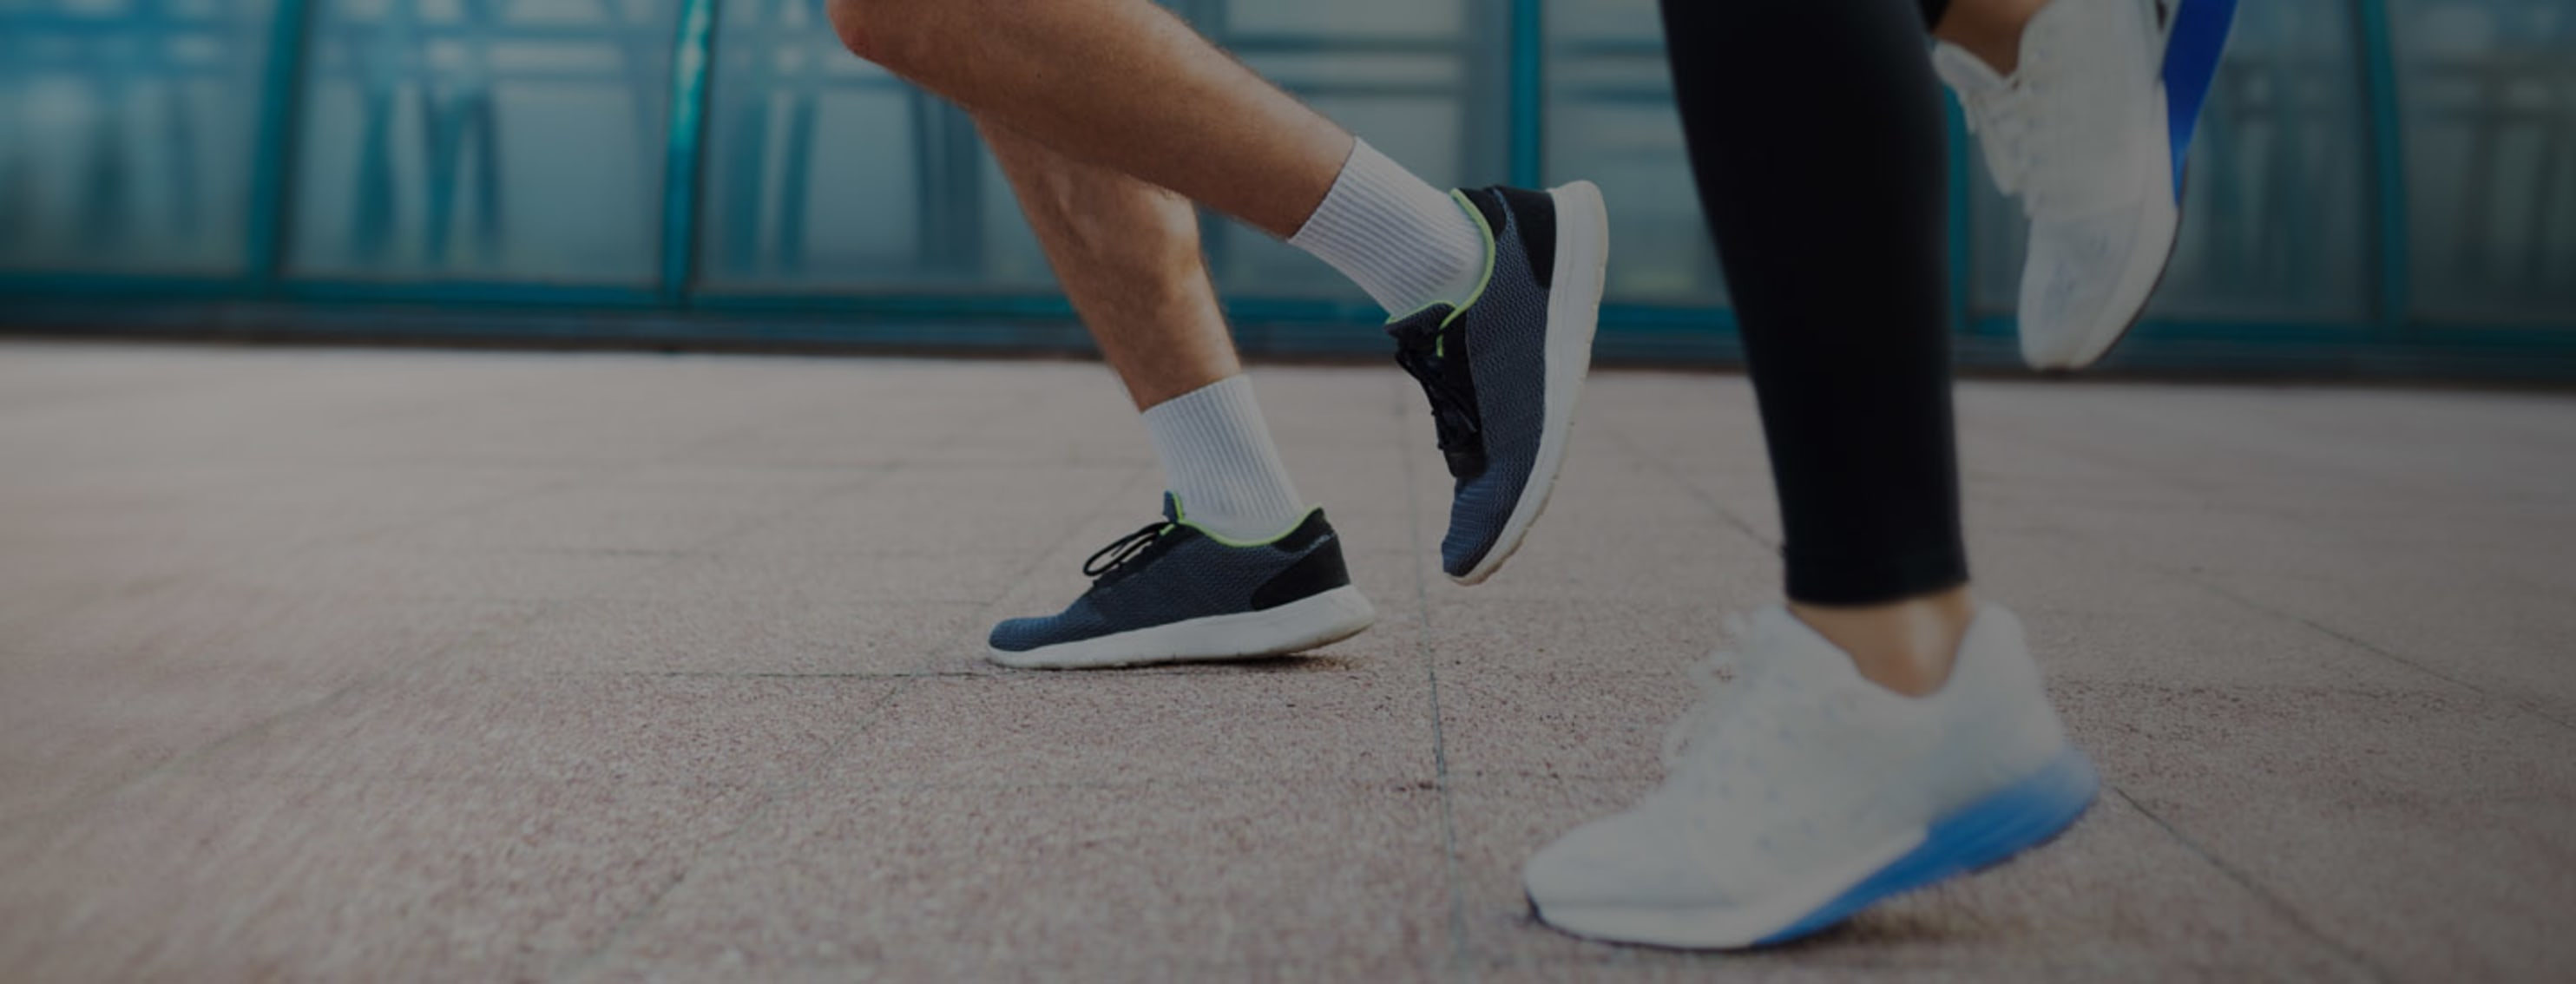 Two people running on pavement with focus on legs